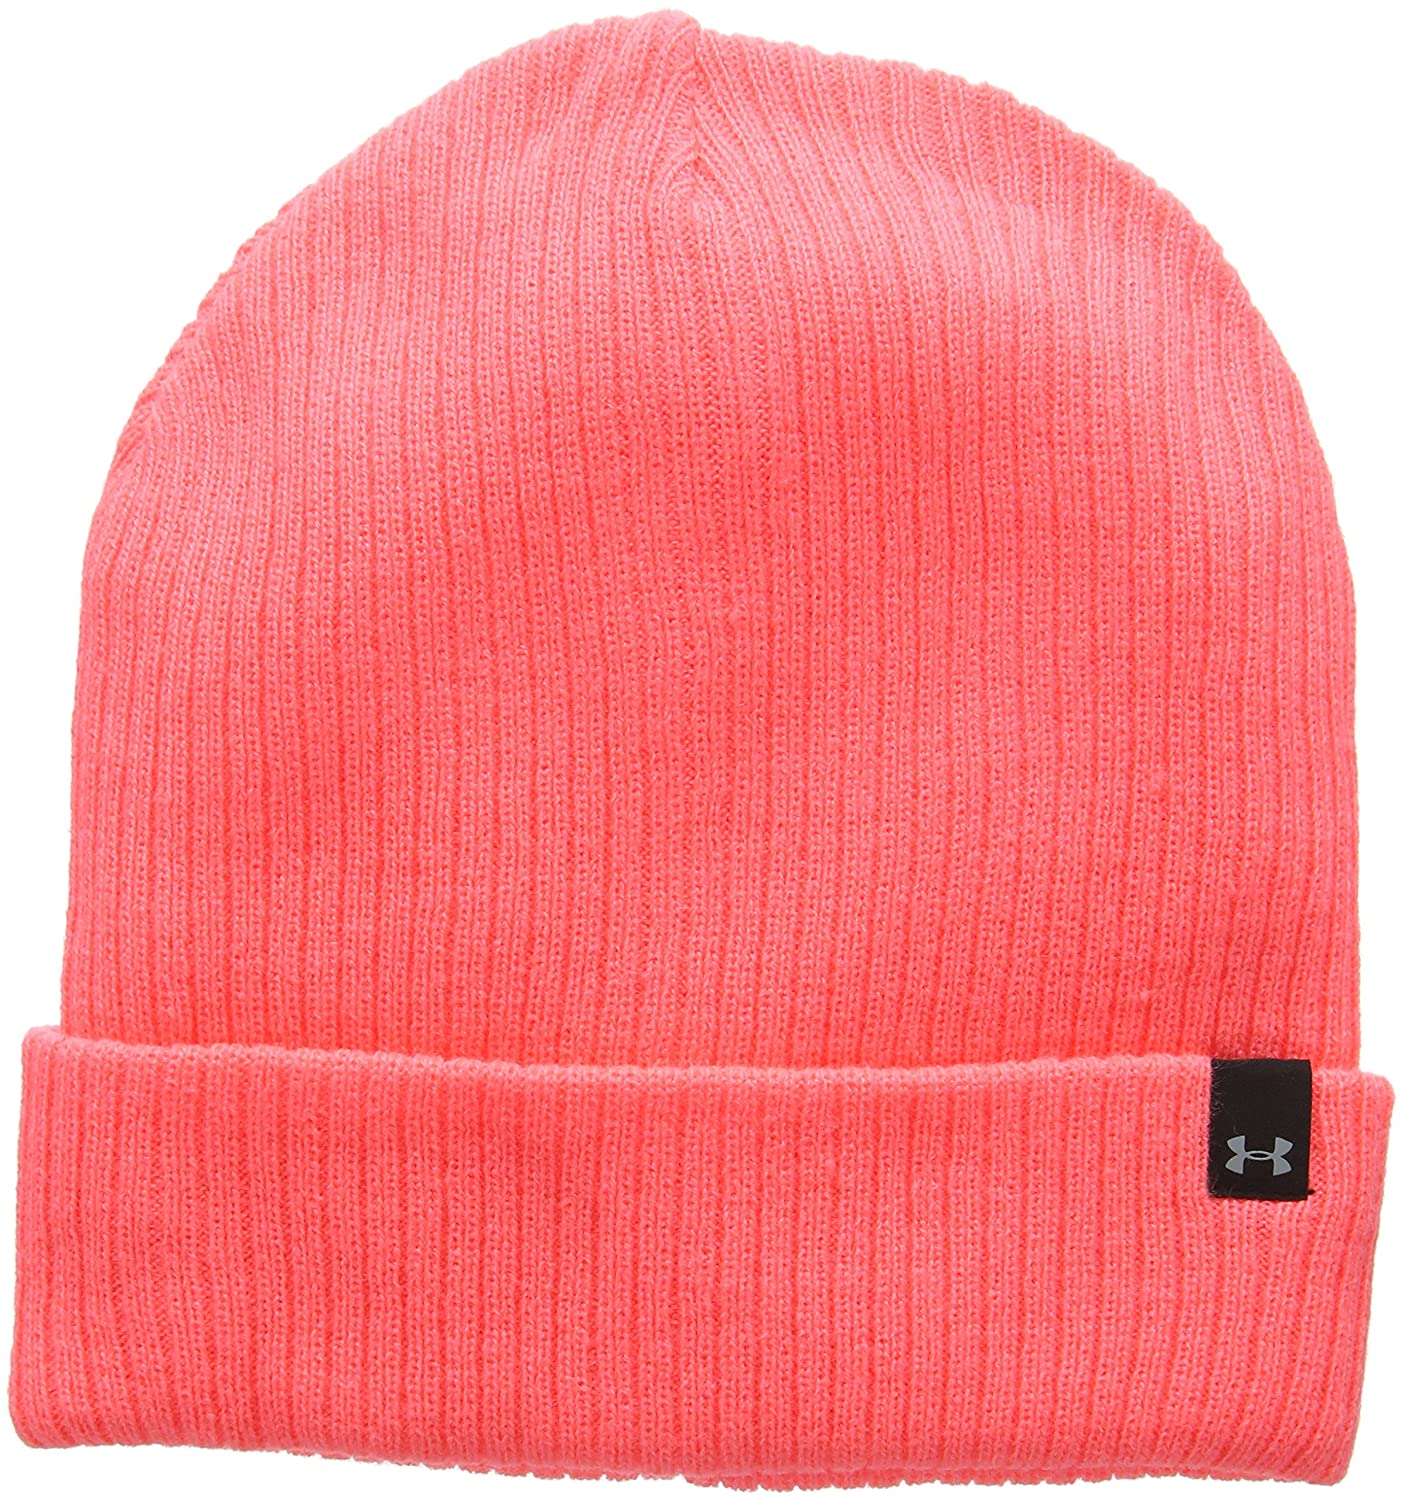 0394d62d5f0 Amazon.com  Under Armour Women s Favorite Knit Beanie